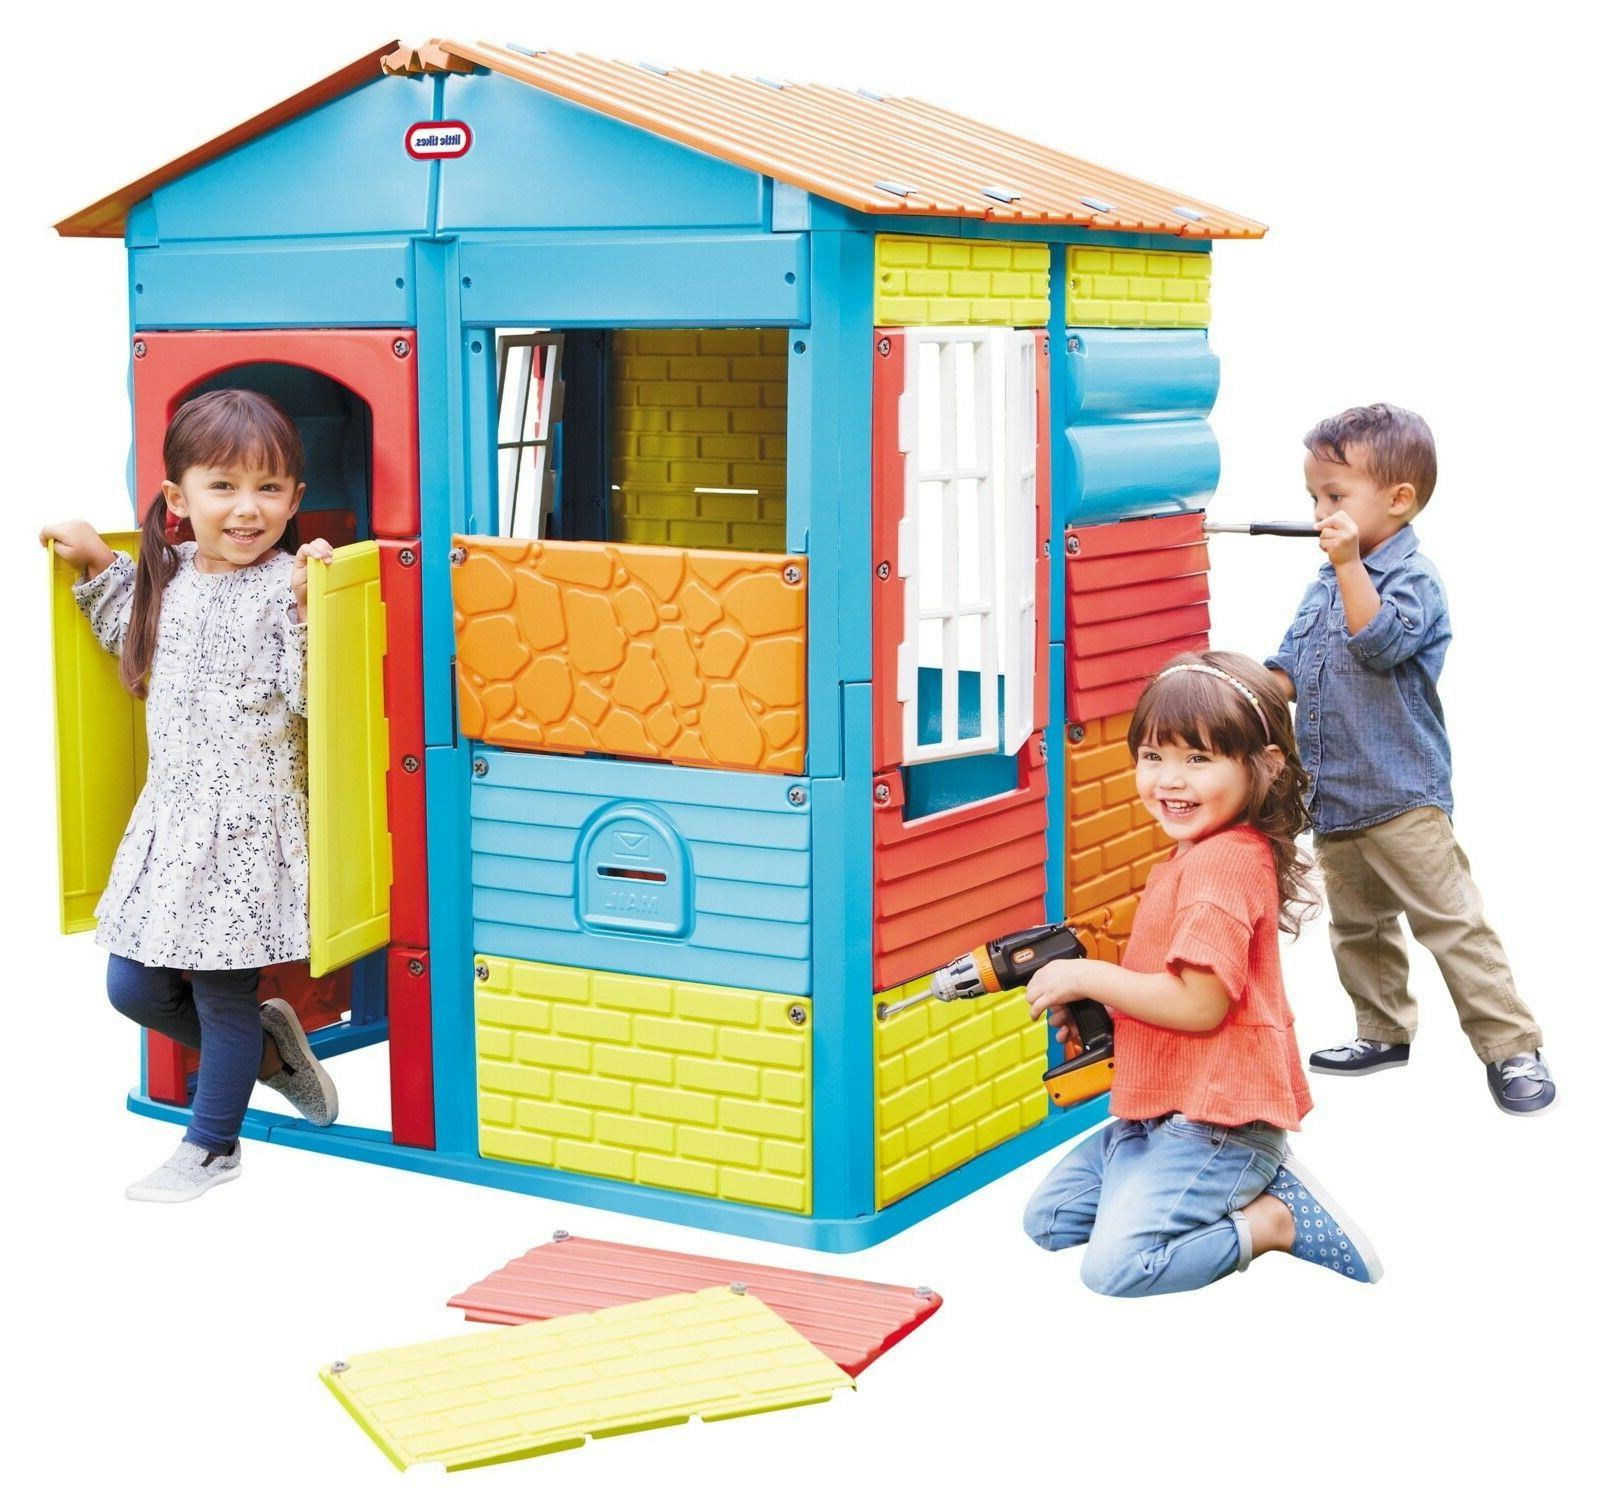 Outdoor Playhouse Little Tikes Playset Accessories ...